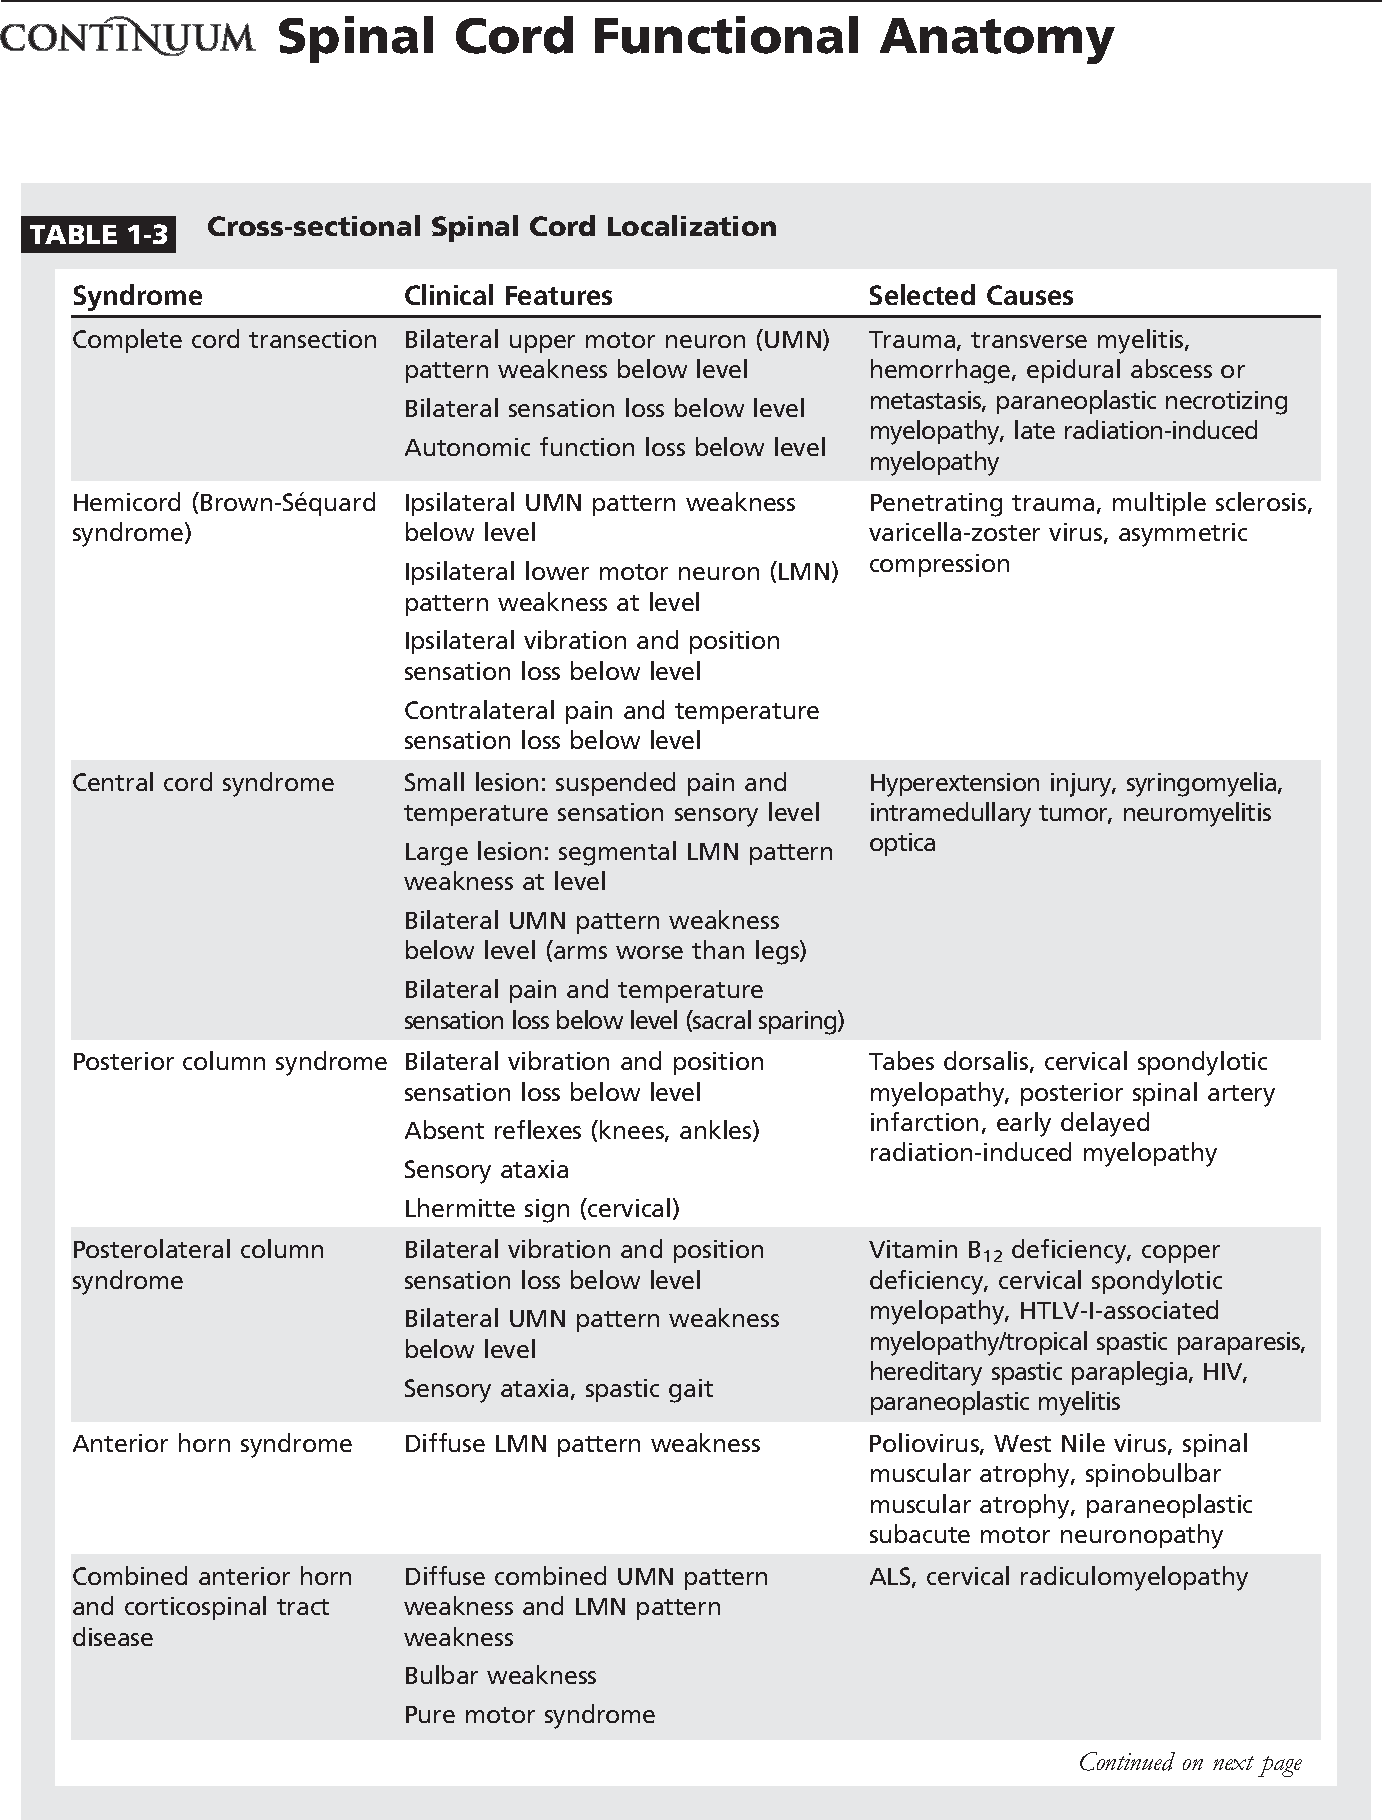 Table 1-3 from Spinal cord functional anatomy. - Semantic Scholar